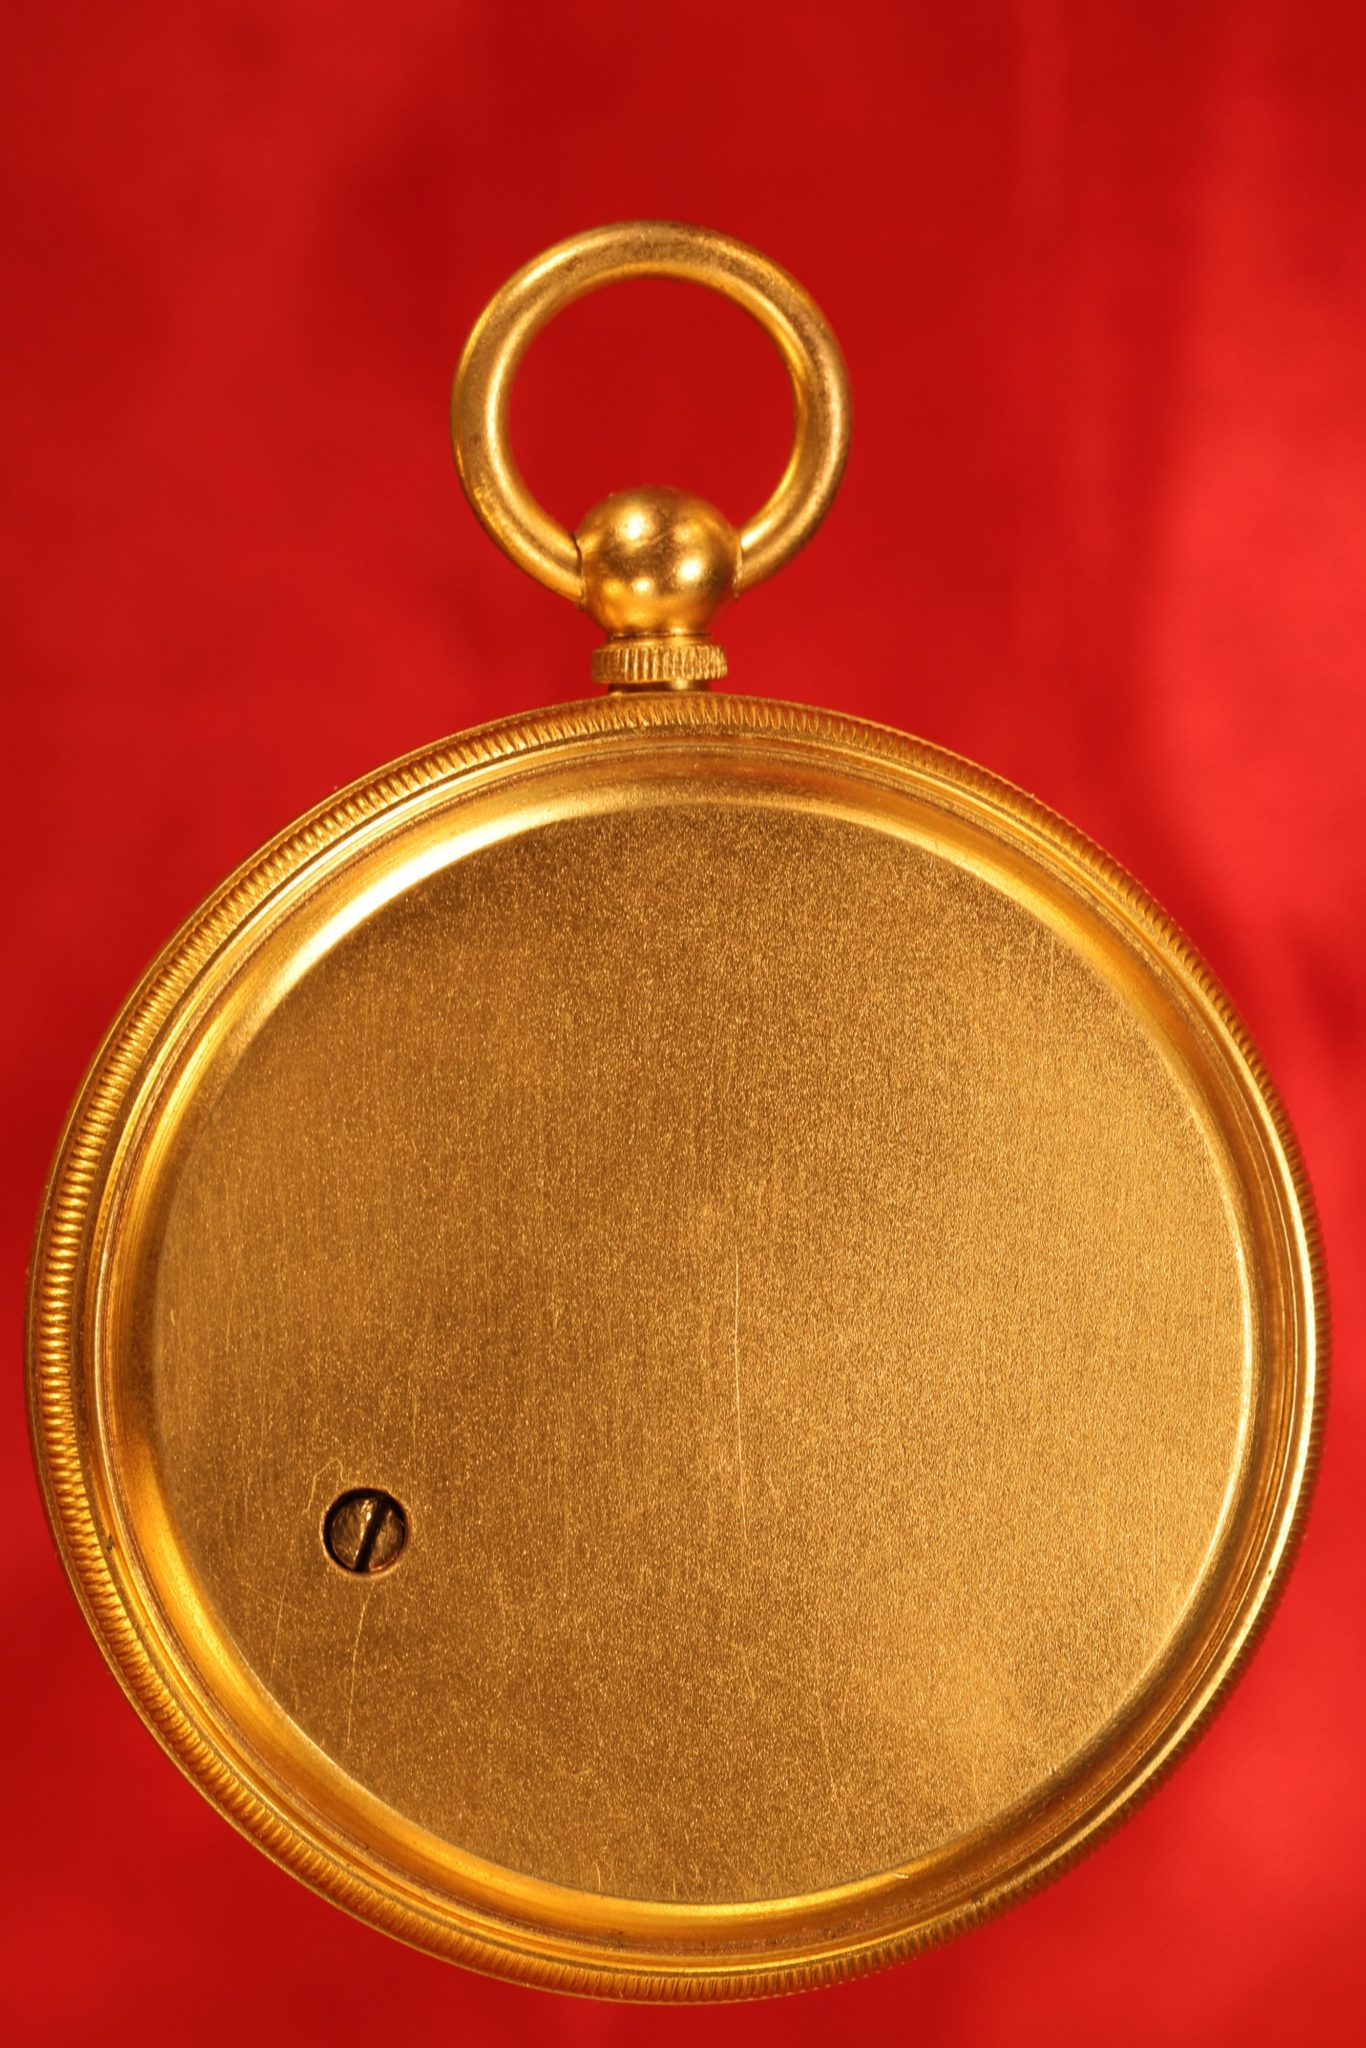 Image of Pocket Barometer Travel Compendium c1890